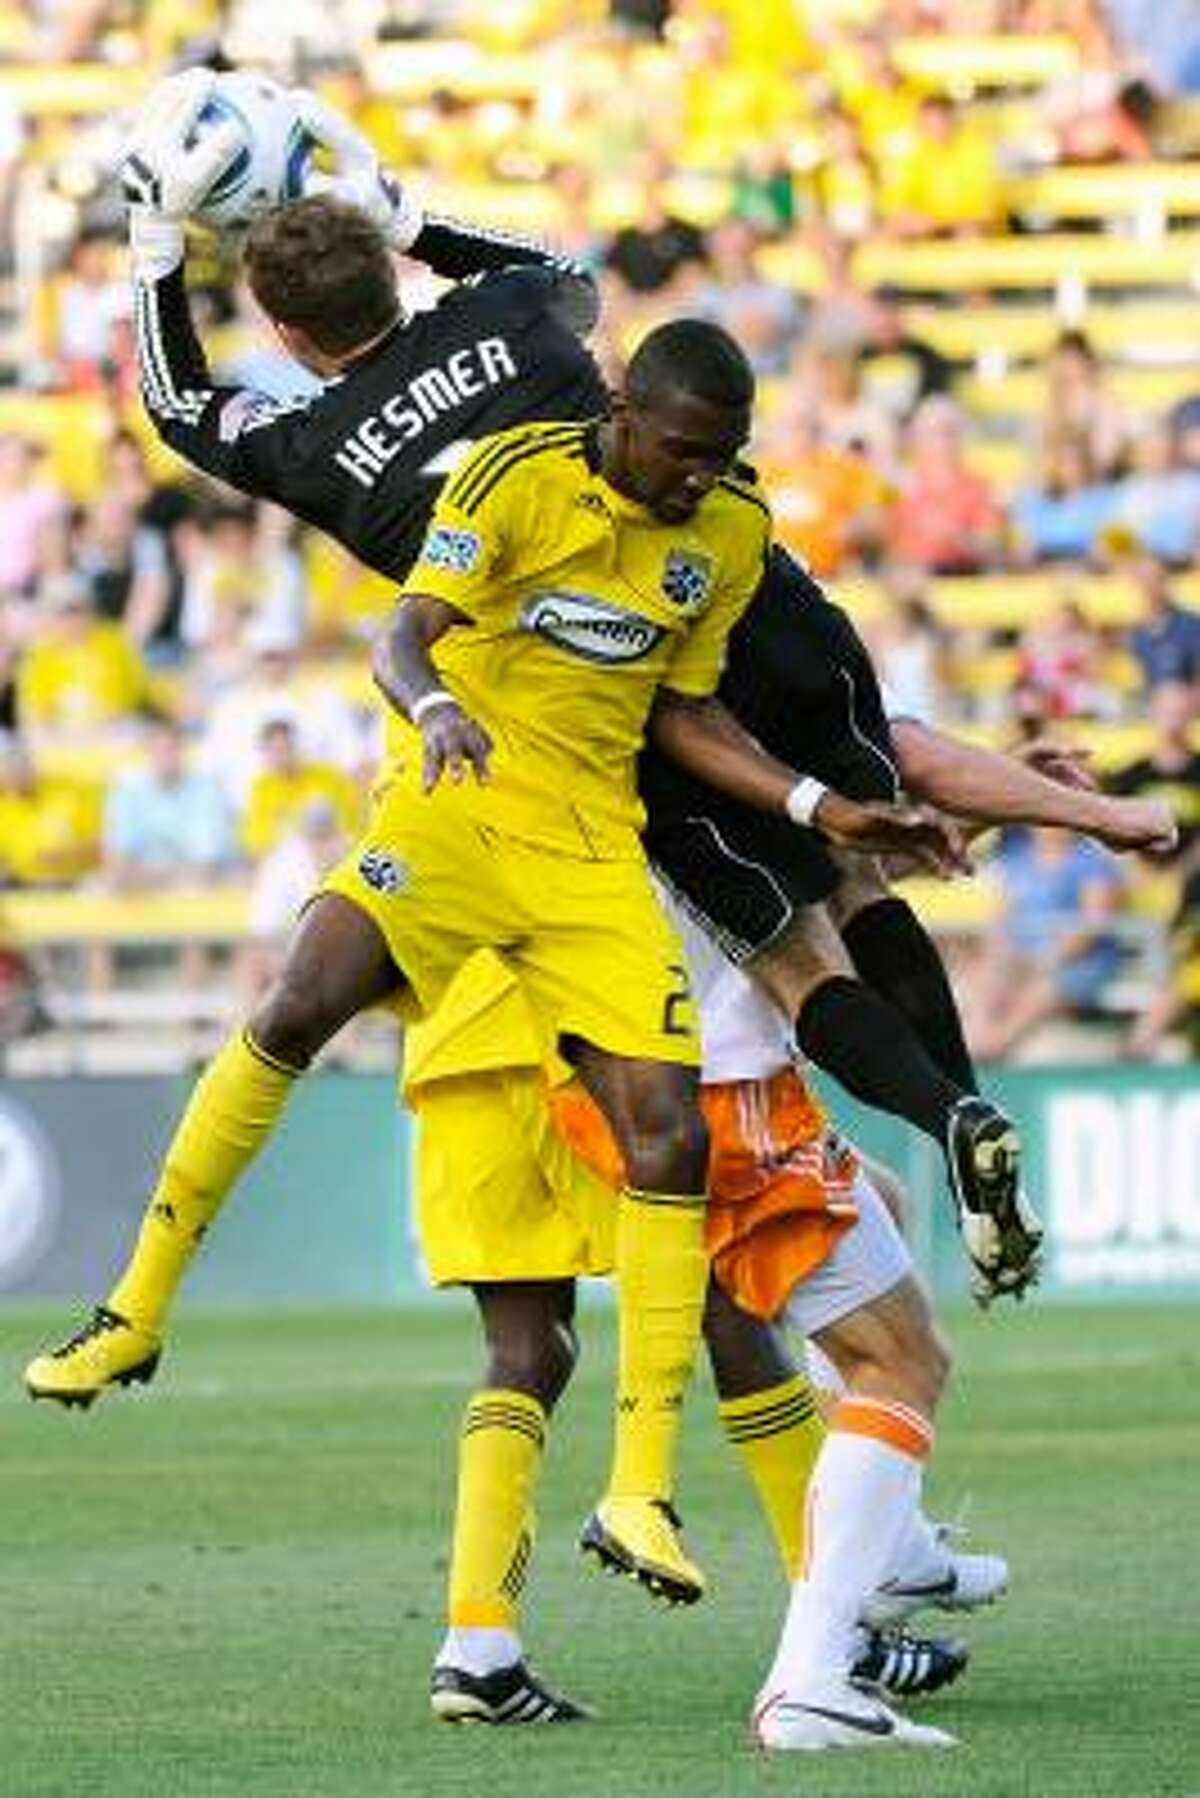 Columbus Crew goalkeeper William Hesmer splits through his teammate Shaun Francis and a Dynamo player to make a save.